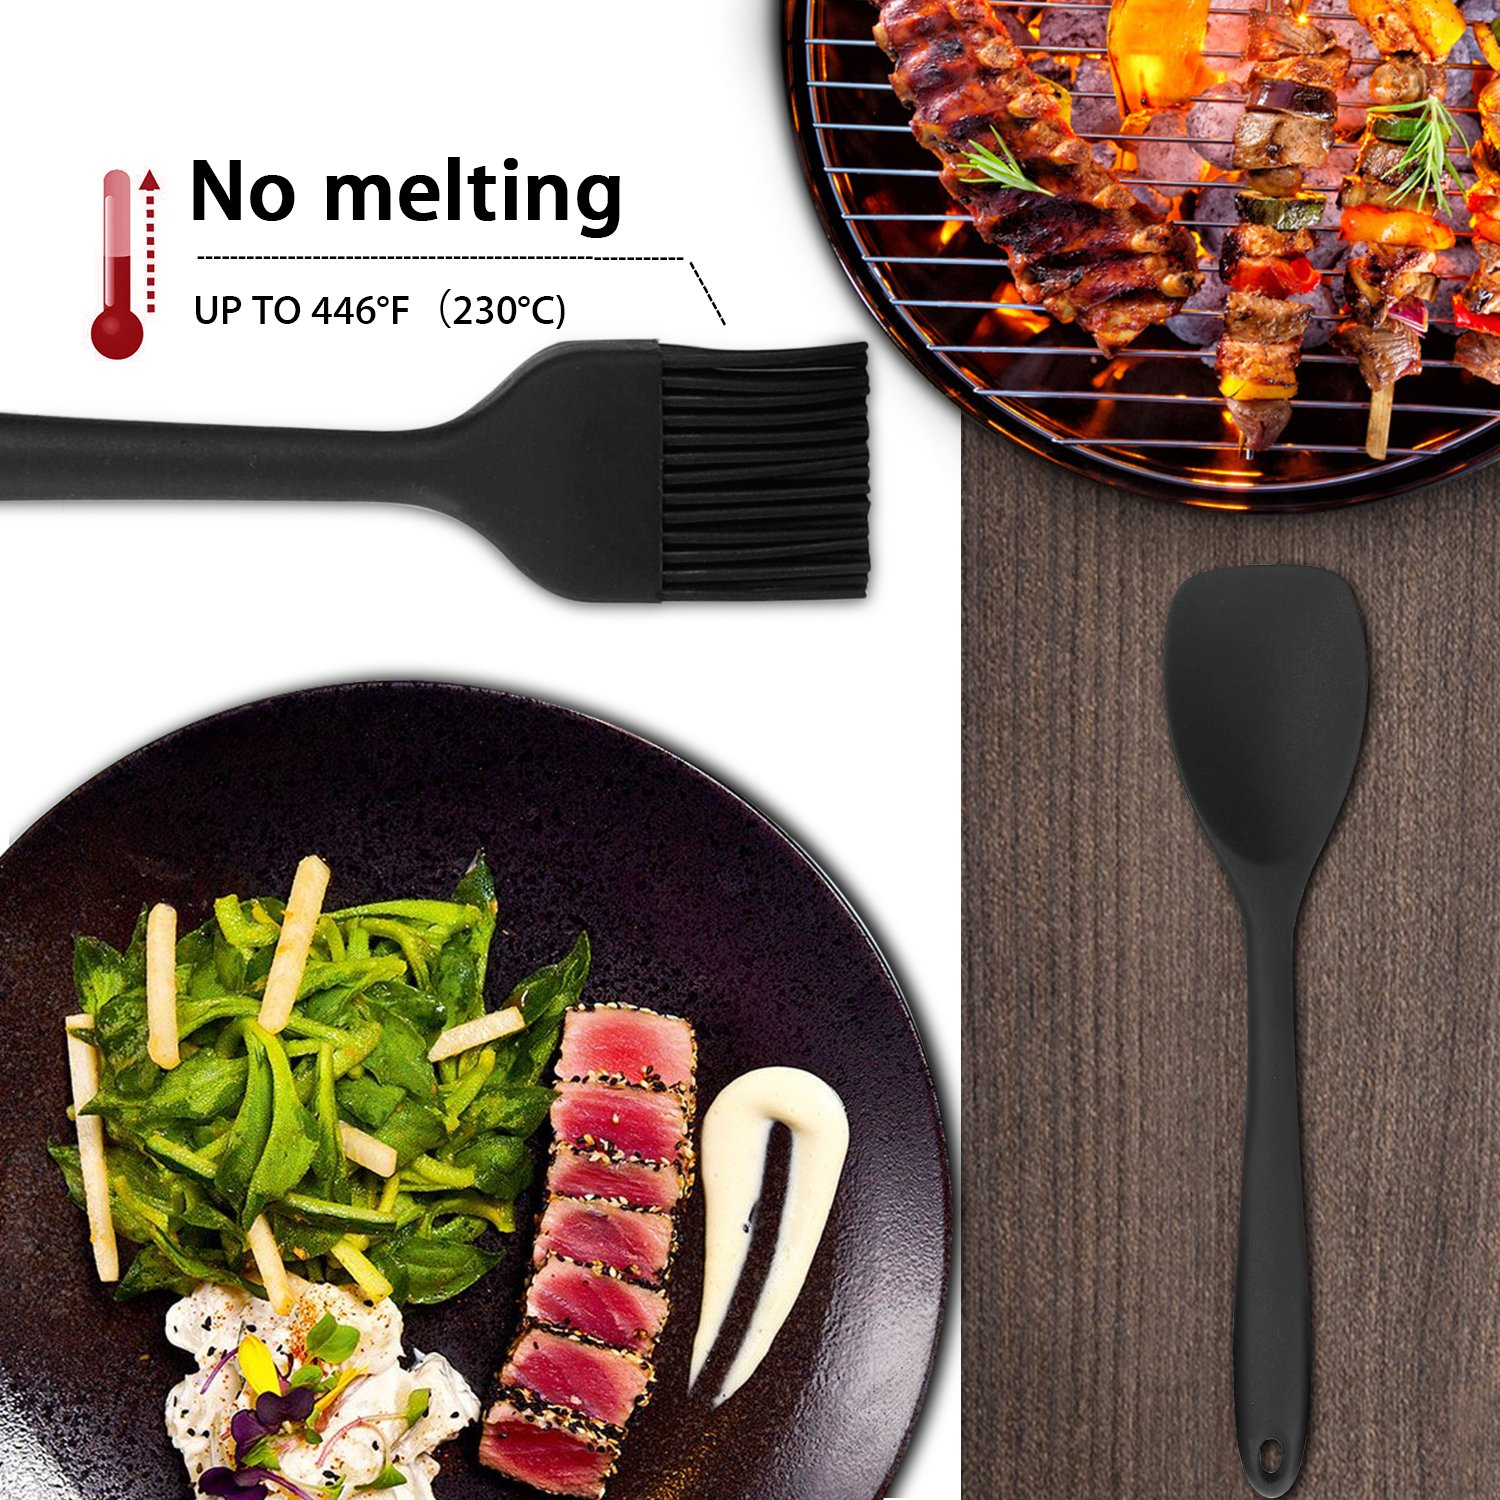 iHomey Silicone Kitchen Utensil Set, 10 Nonstick/Heat Resistant Cooking Utensils - Tongs, Whisk, Spoons, Spatulas, Ladle, Flexible Turner, Pasta Server, Brush - Dishwasher Safe(Black) by iHomey (Image #4)